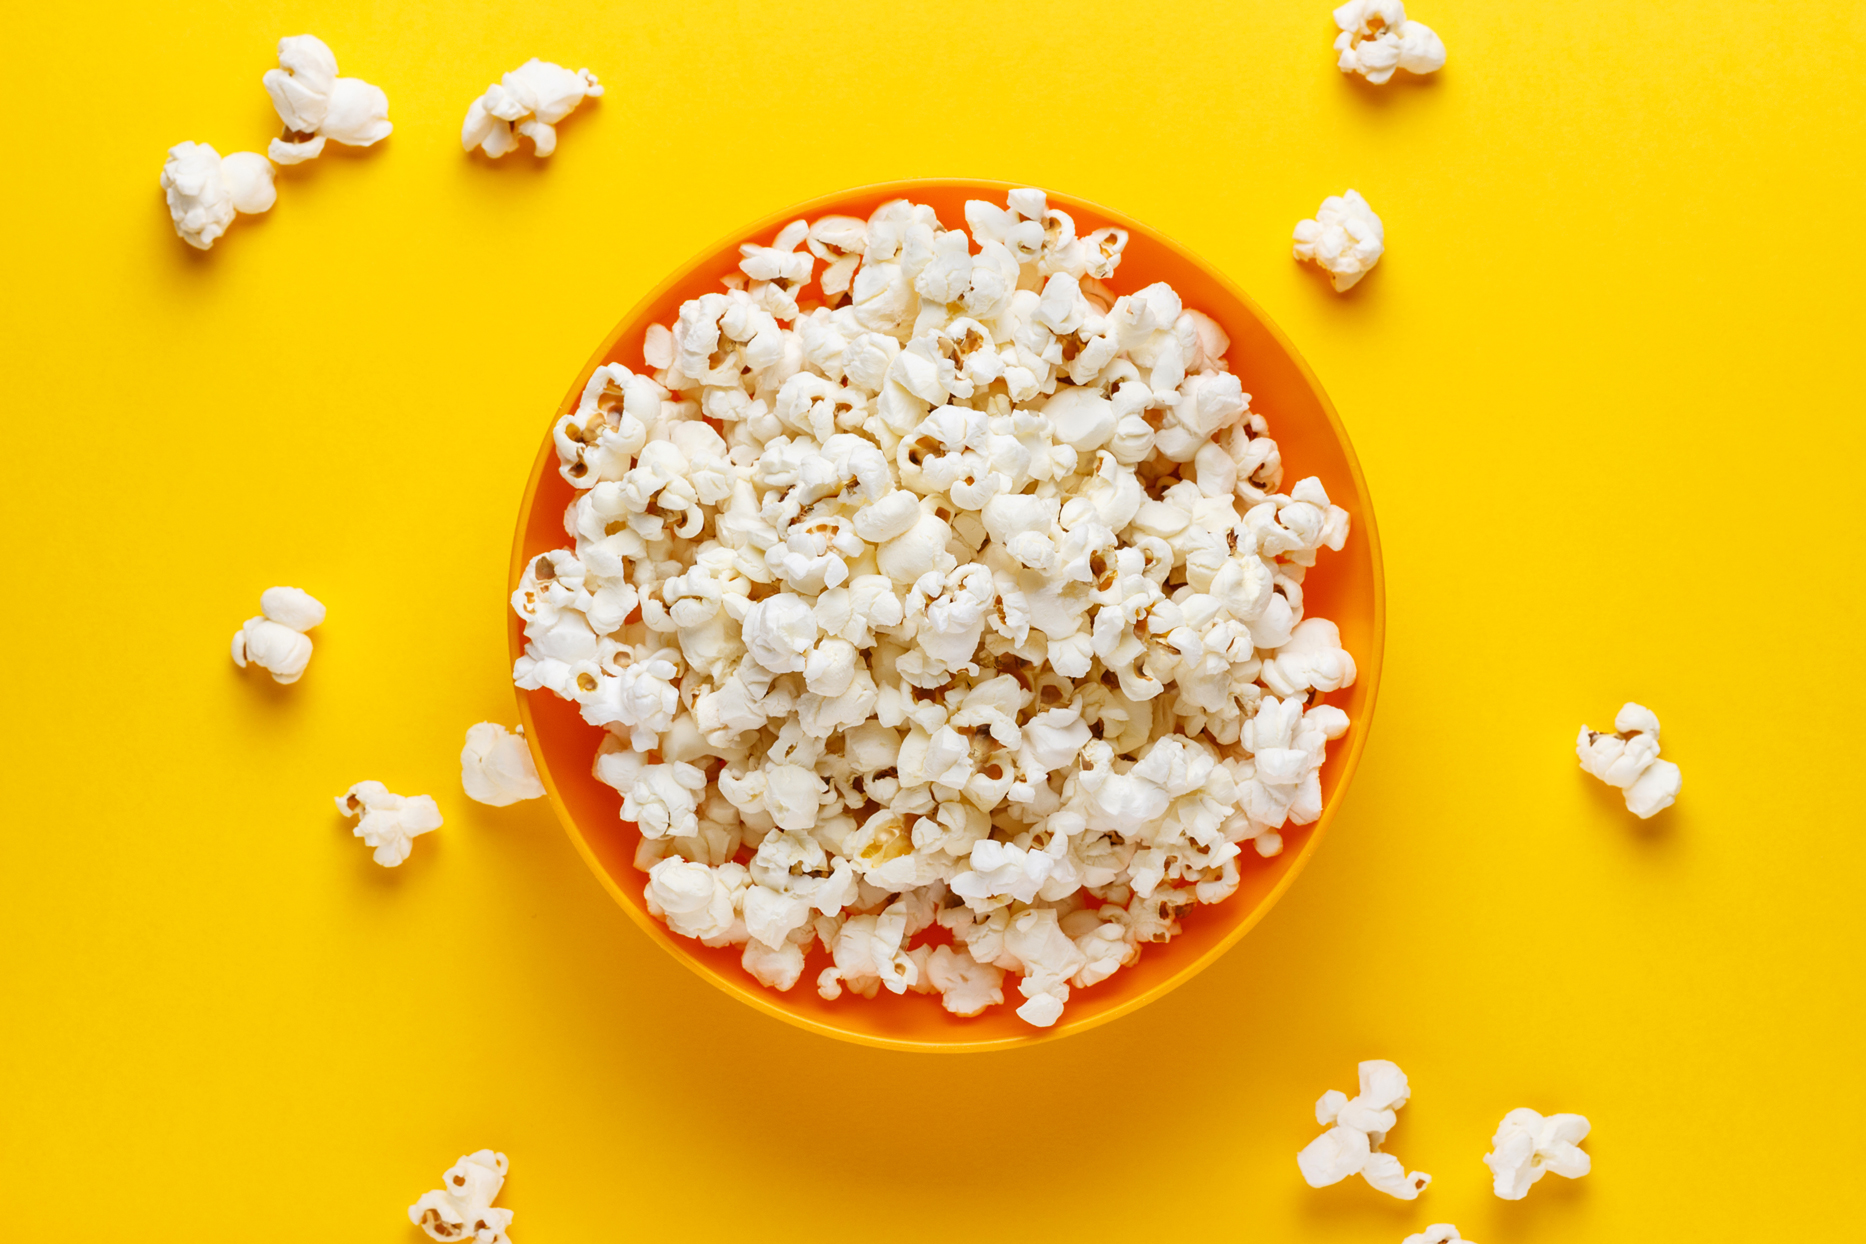 popcorn in orange bowl on yellow background